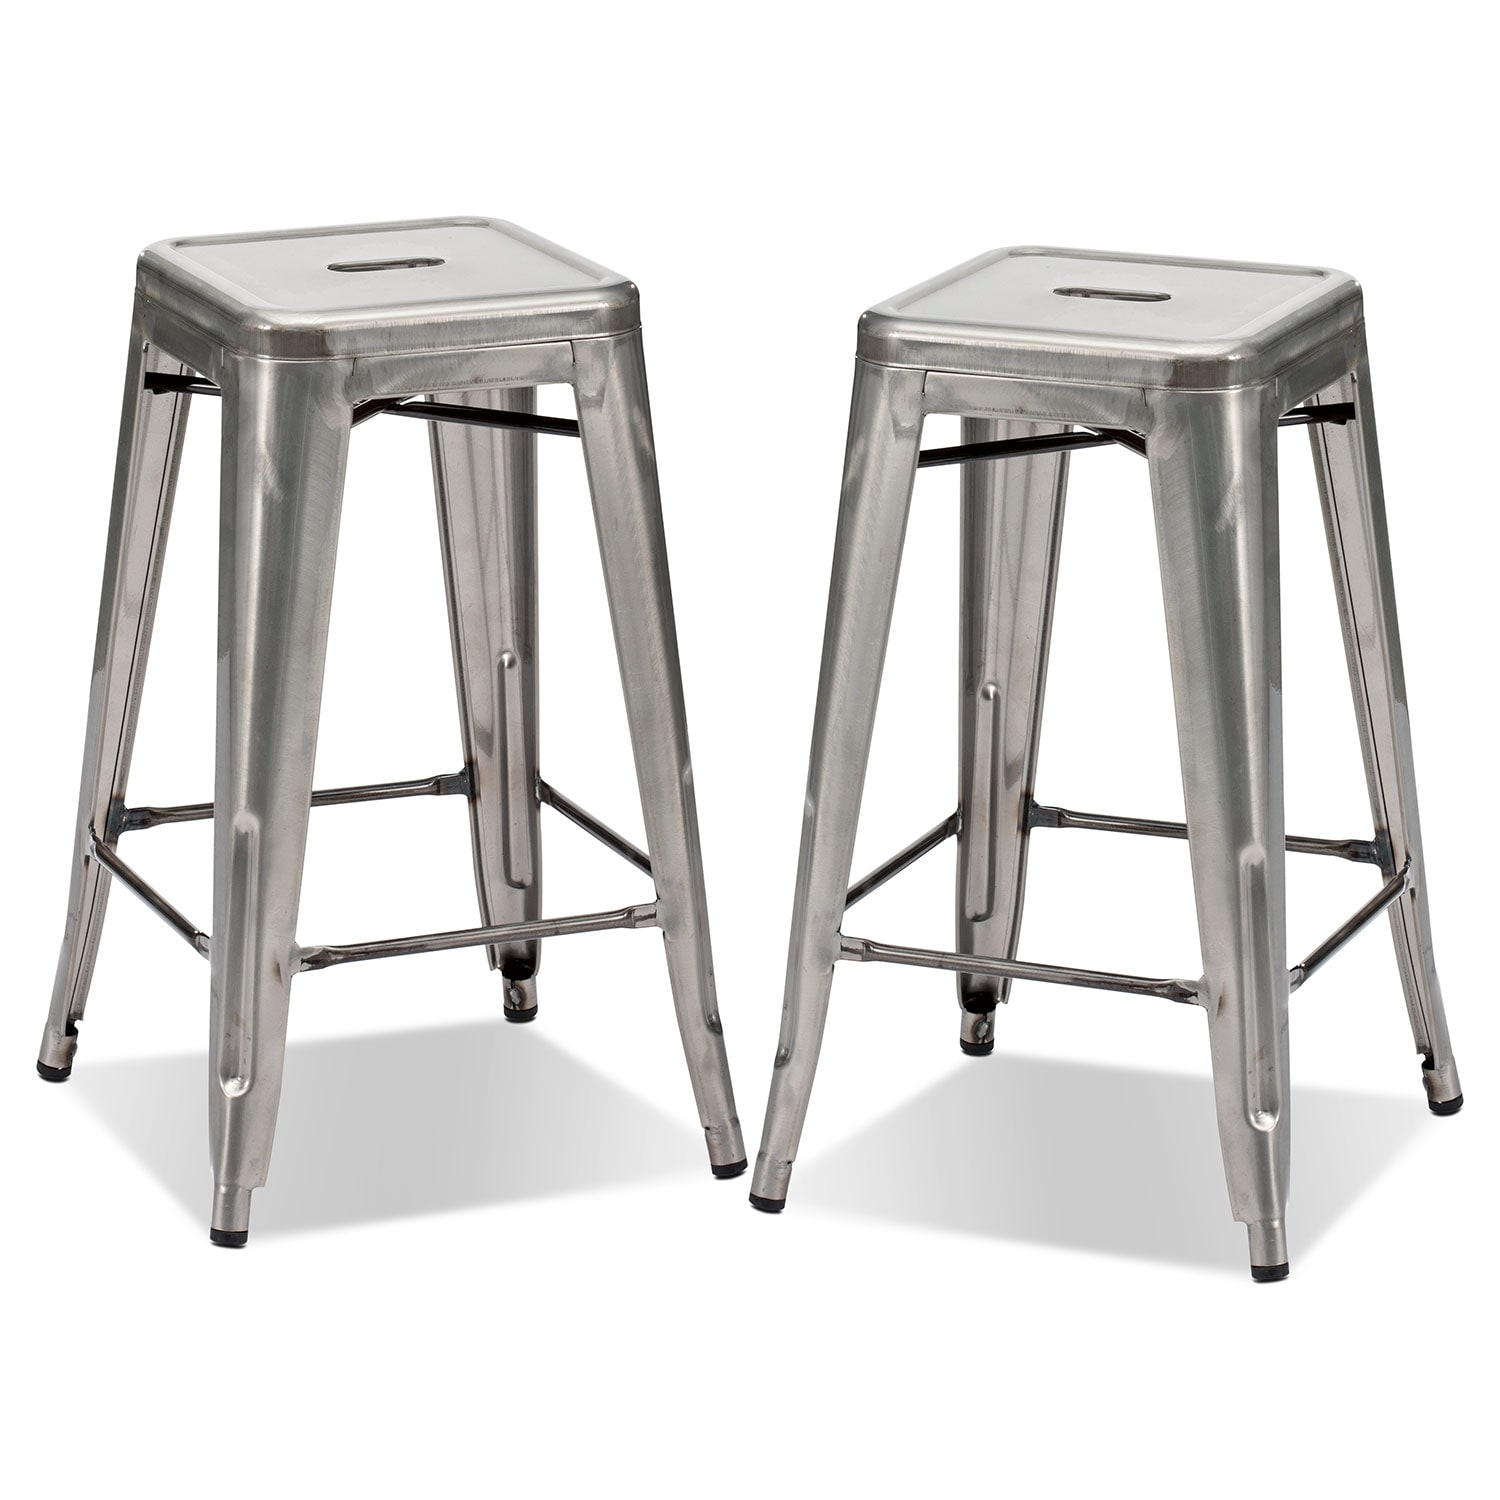 Dining Room Furniture - Squadron 2-Pack Counter-Height Stools - Polished Steel